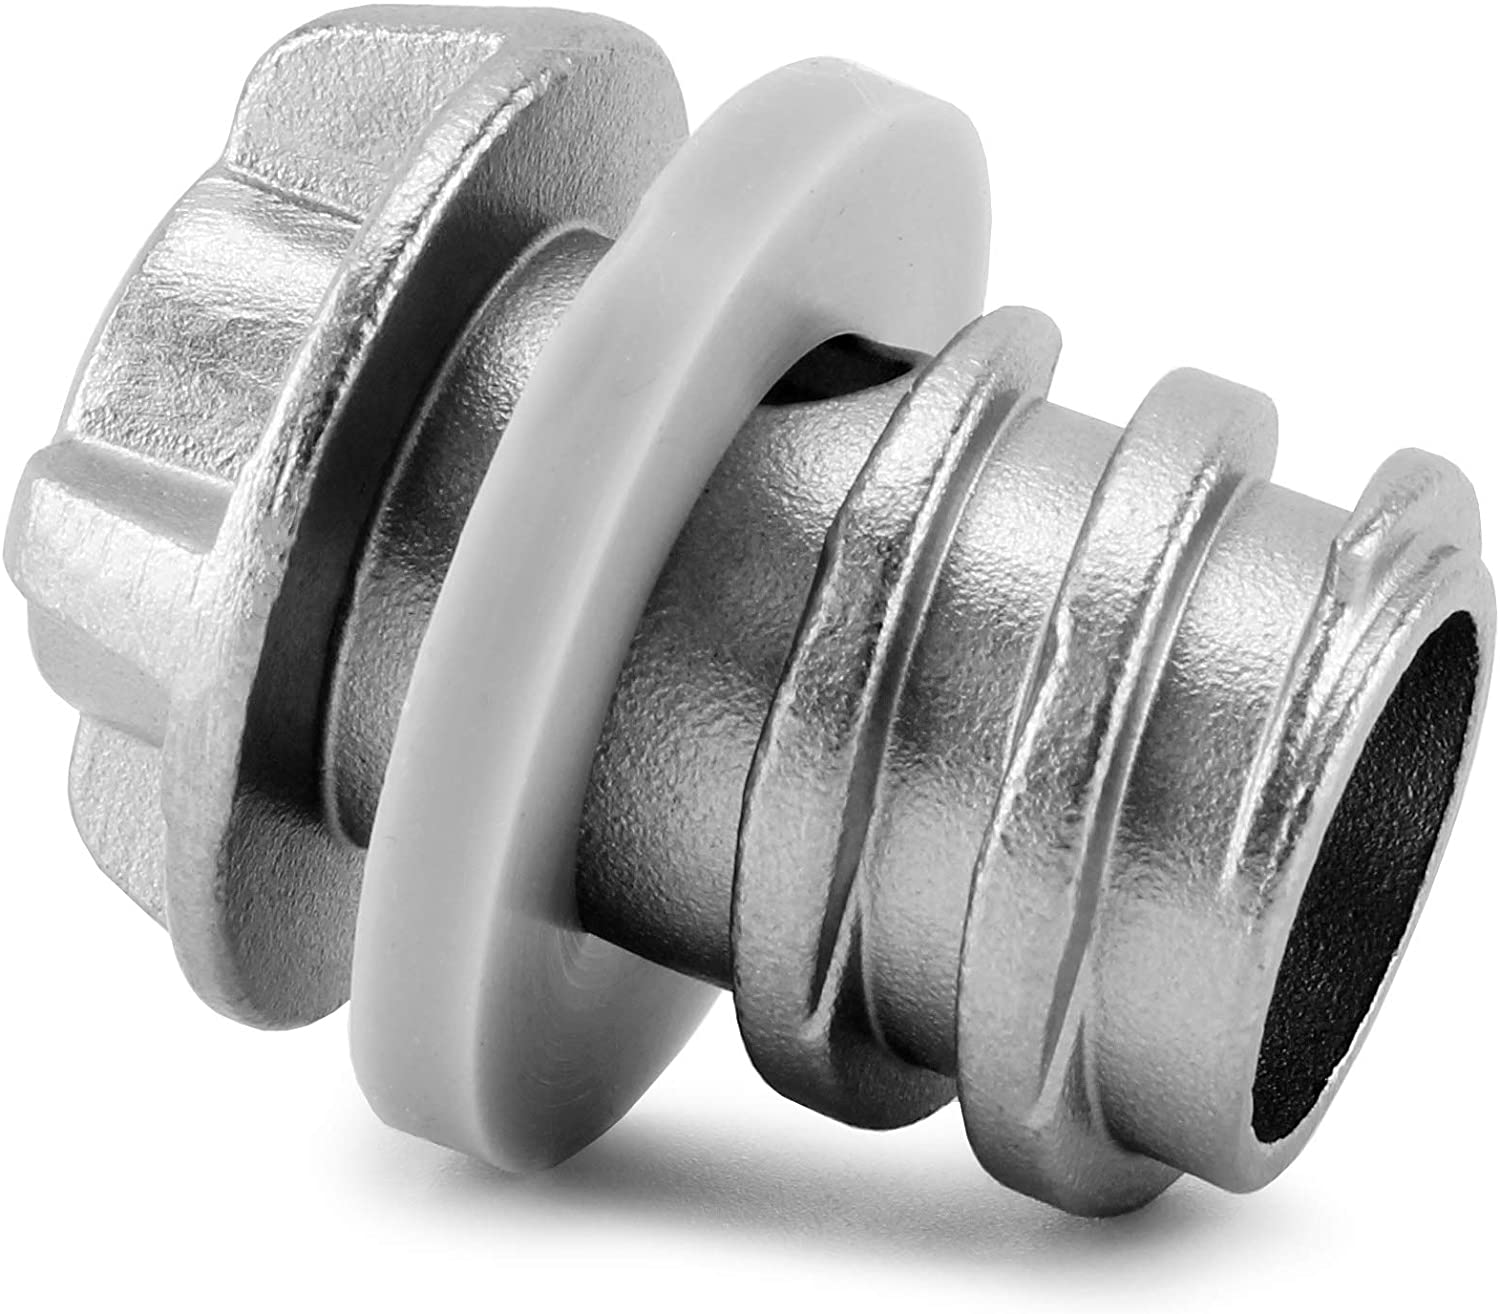 Cornucopia Drain Plug, Yeti-Compatible Stainless Steel Replacement Plug for Tundra, Roadie, and Tank Ice Buckets, Also Compatible with RTIC